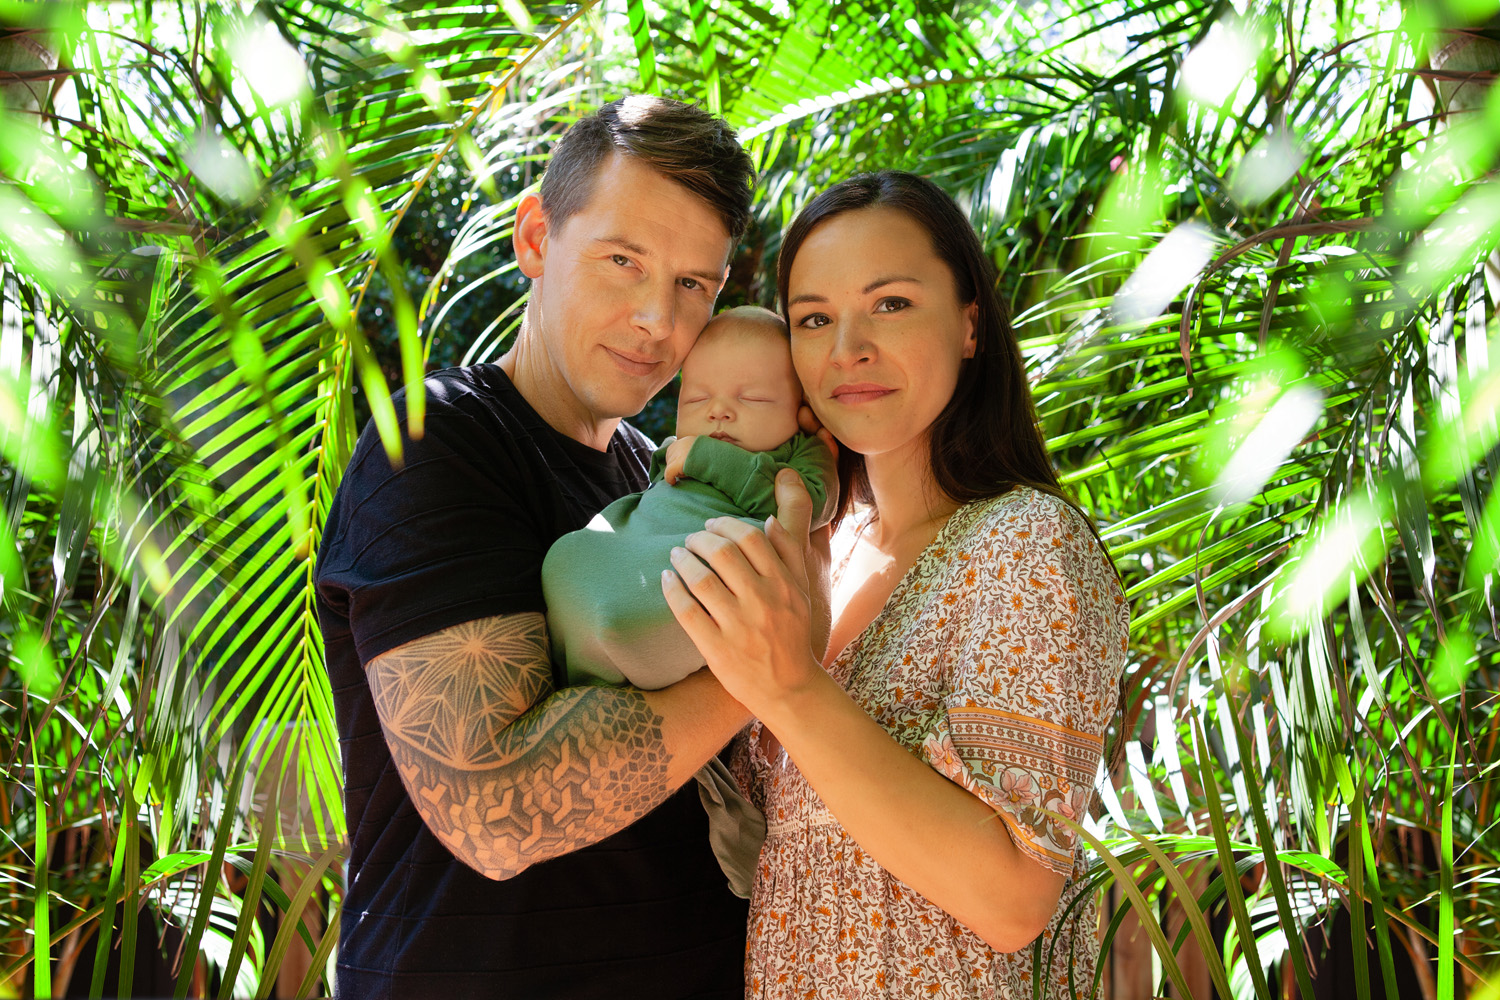 natural family photography; gold coast newborn photography; natural newborn photography; gold coast in home photography; natural portraits gold coast; natural family portraits gold coast; professional family portrait photographer gold coast; @lananoir; lana noir photographer; lana noir photography